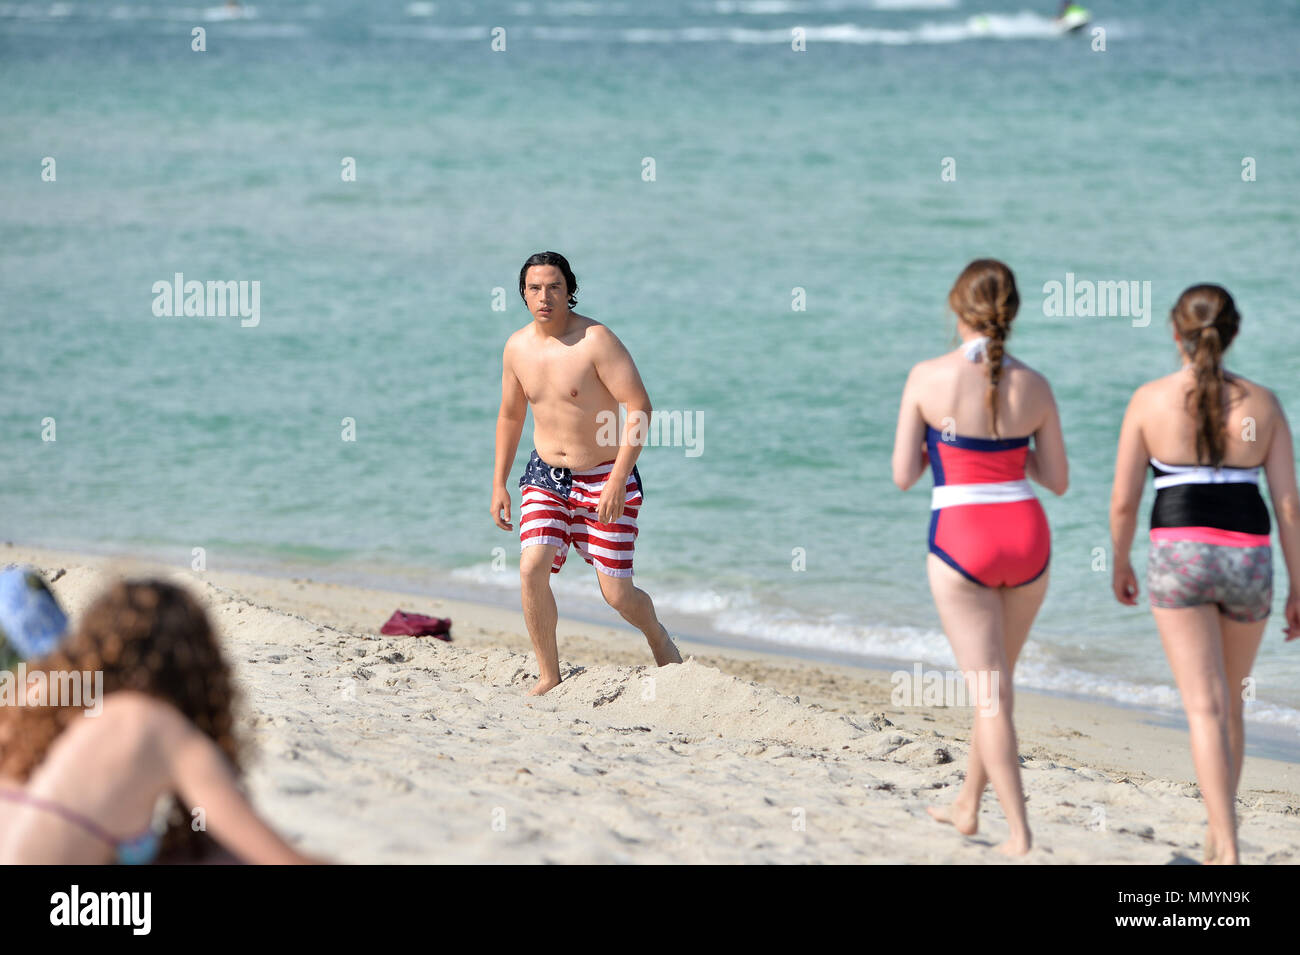 05e011b18a MIAMI BEACH, FL - MAY 14: Actor Jon Bass goes for a swim wearing American  Flag bathing suit at his South Beach Hotel on Mother's Day on May 14, ...